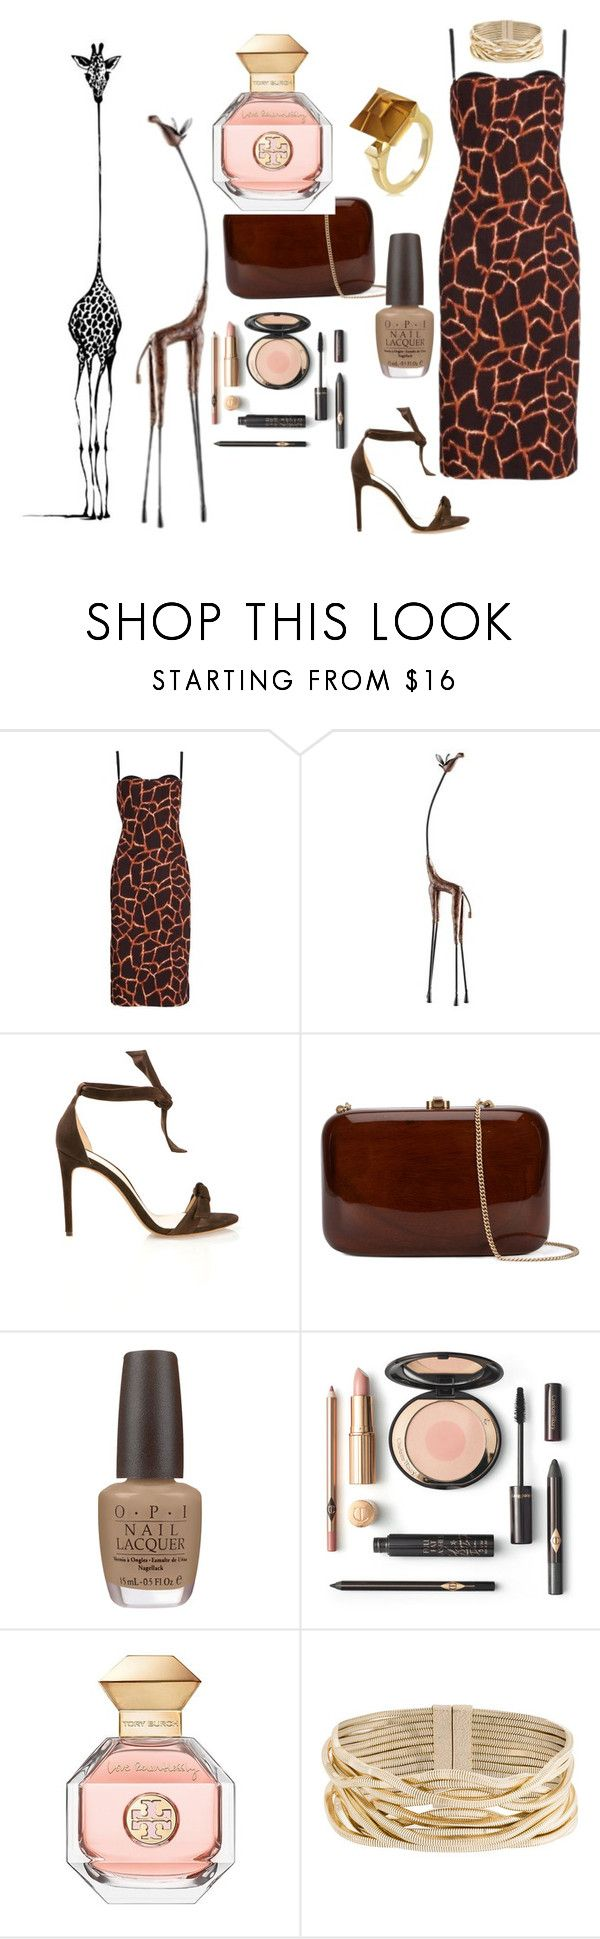 """""""Favorite animal"""" by vettec ❤ liked on Polyvore featuring Dolce&Gabbana, Cyan Design, Alexandre Birman, Rocio, OPI, Tory Burch, Rosantica and Gucci"""